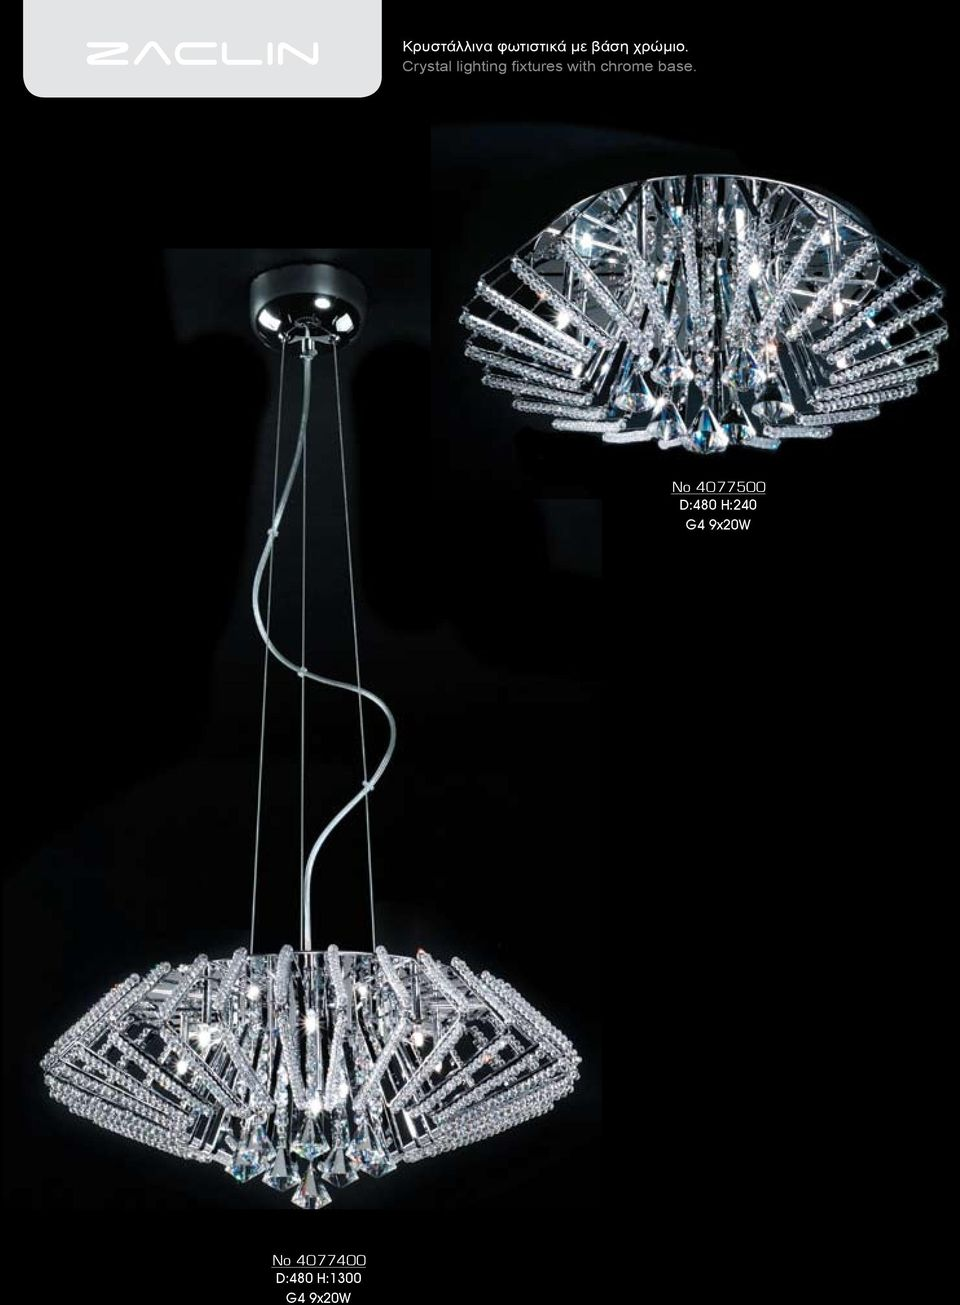 Crystal lighting fixtures with chrome